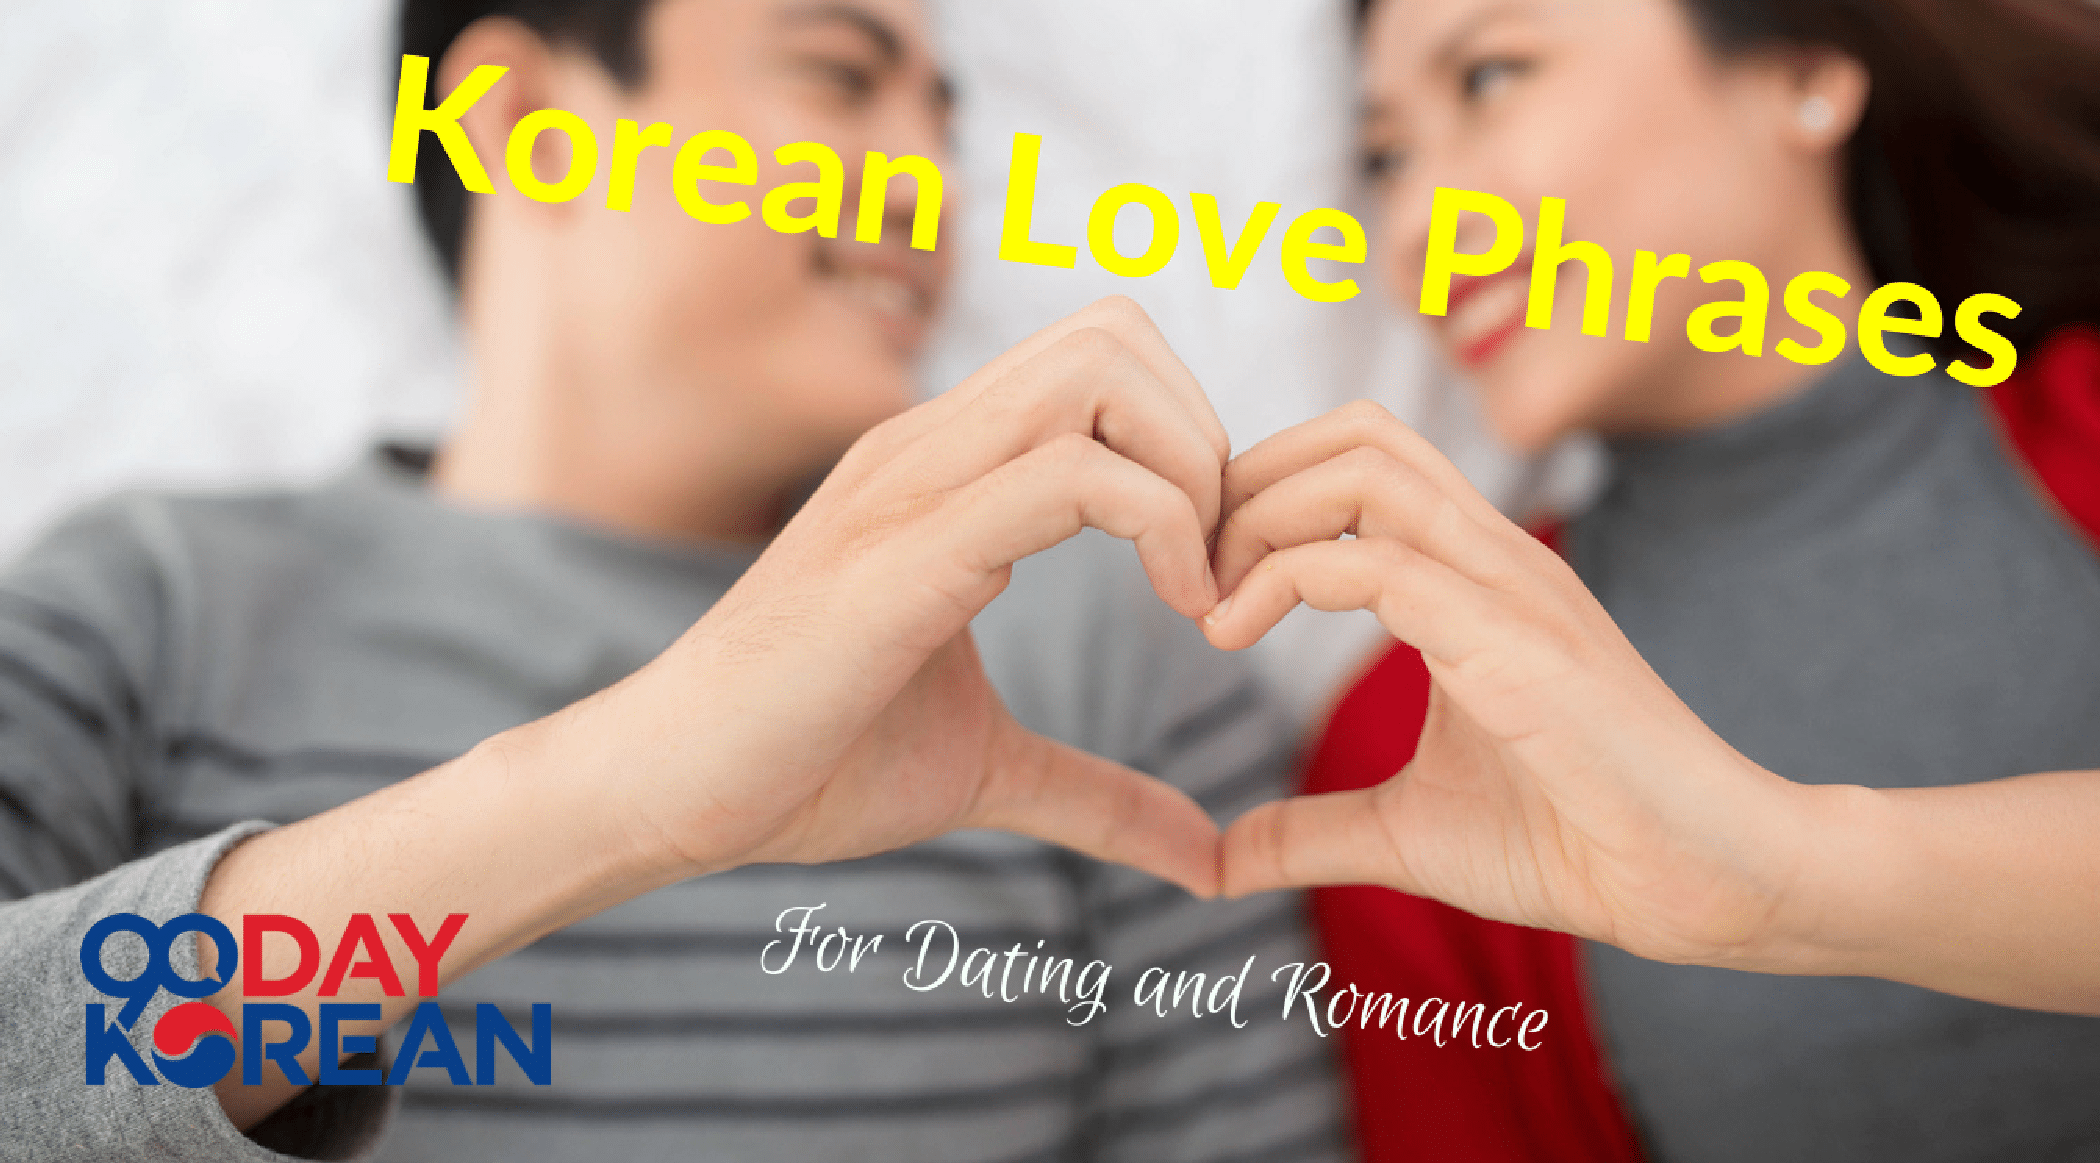 Korean Love Phrases For Dating & Relationships